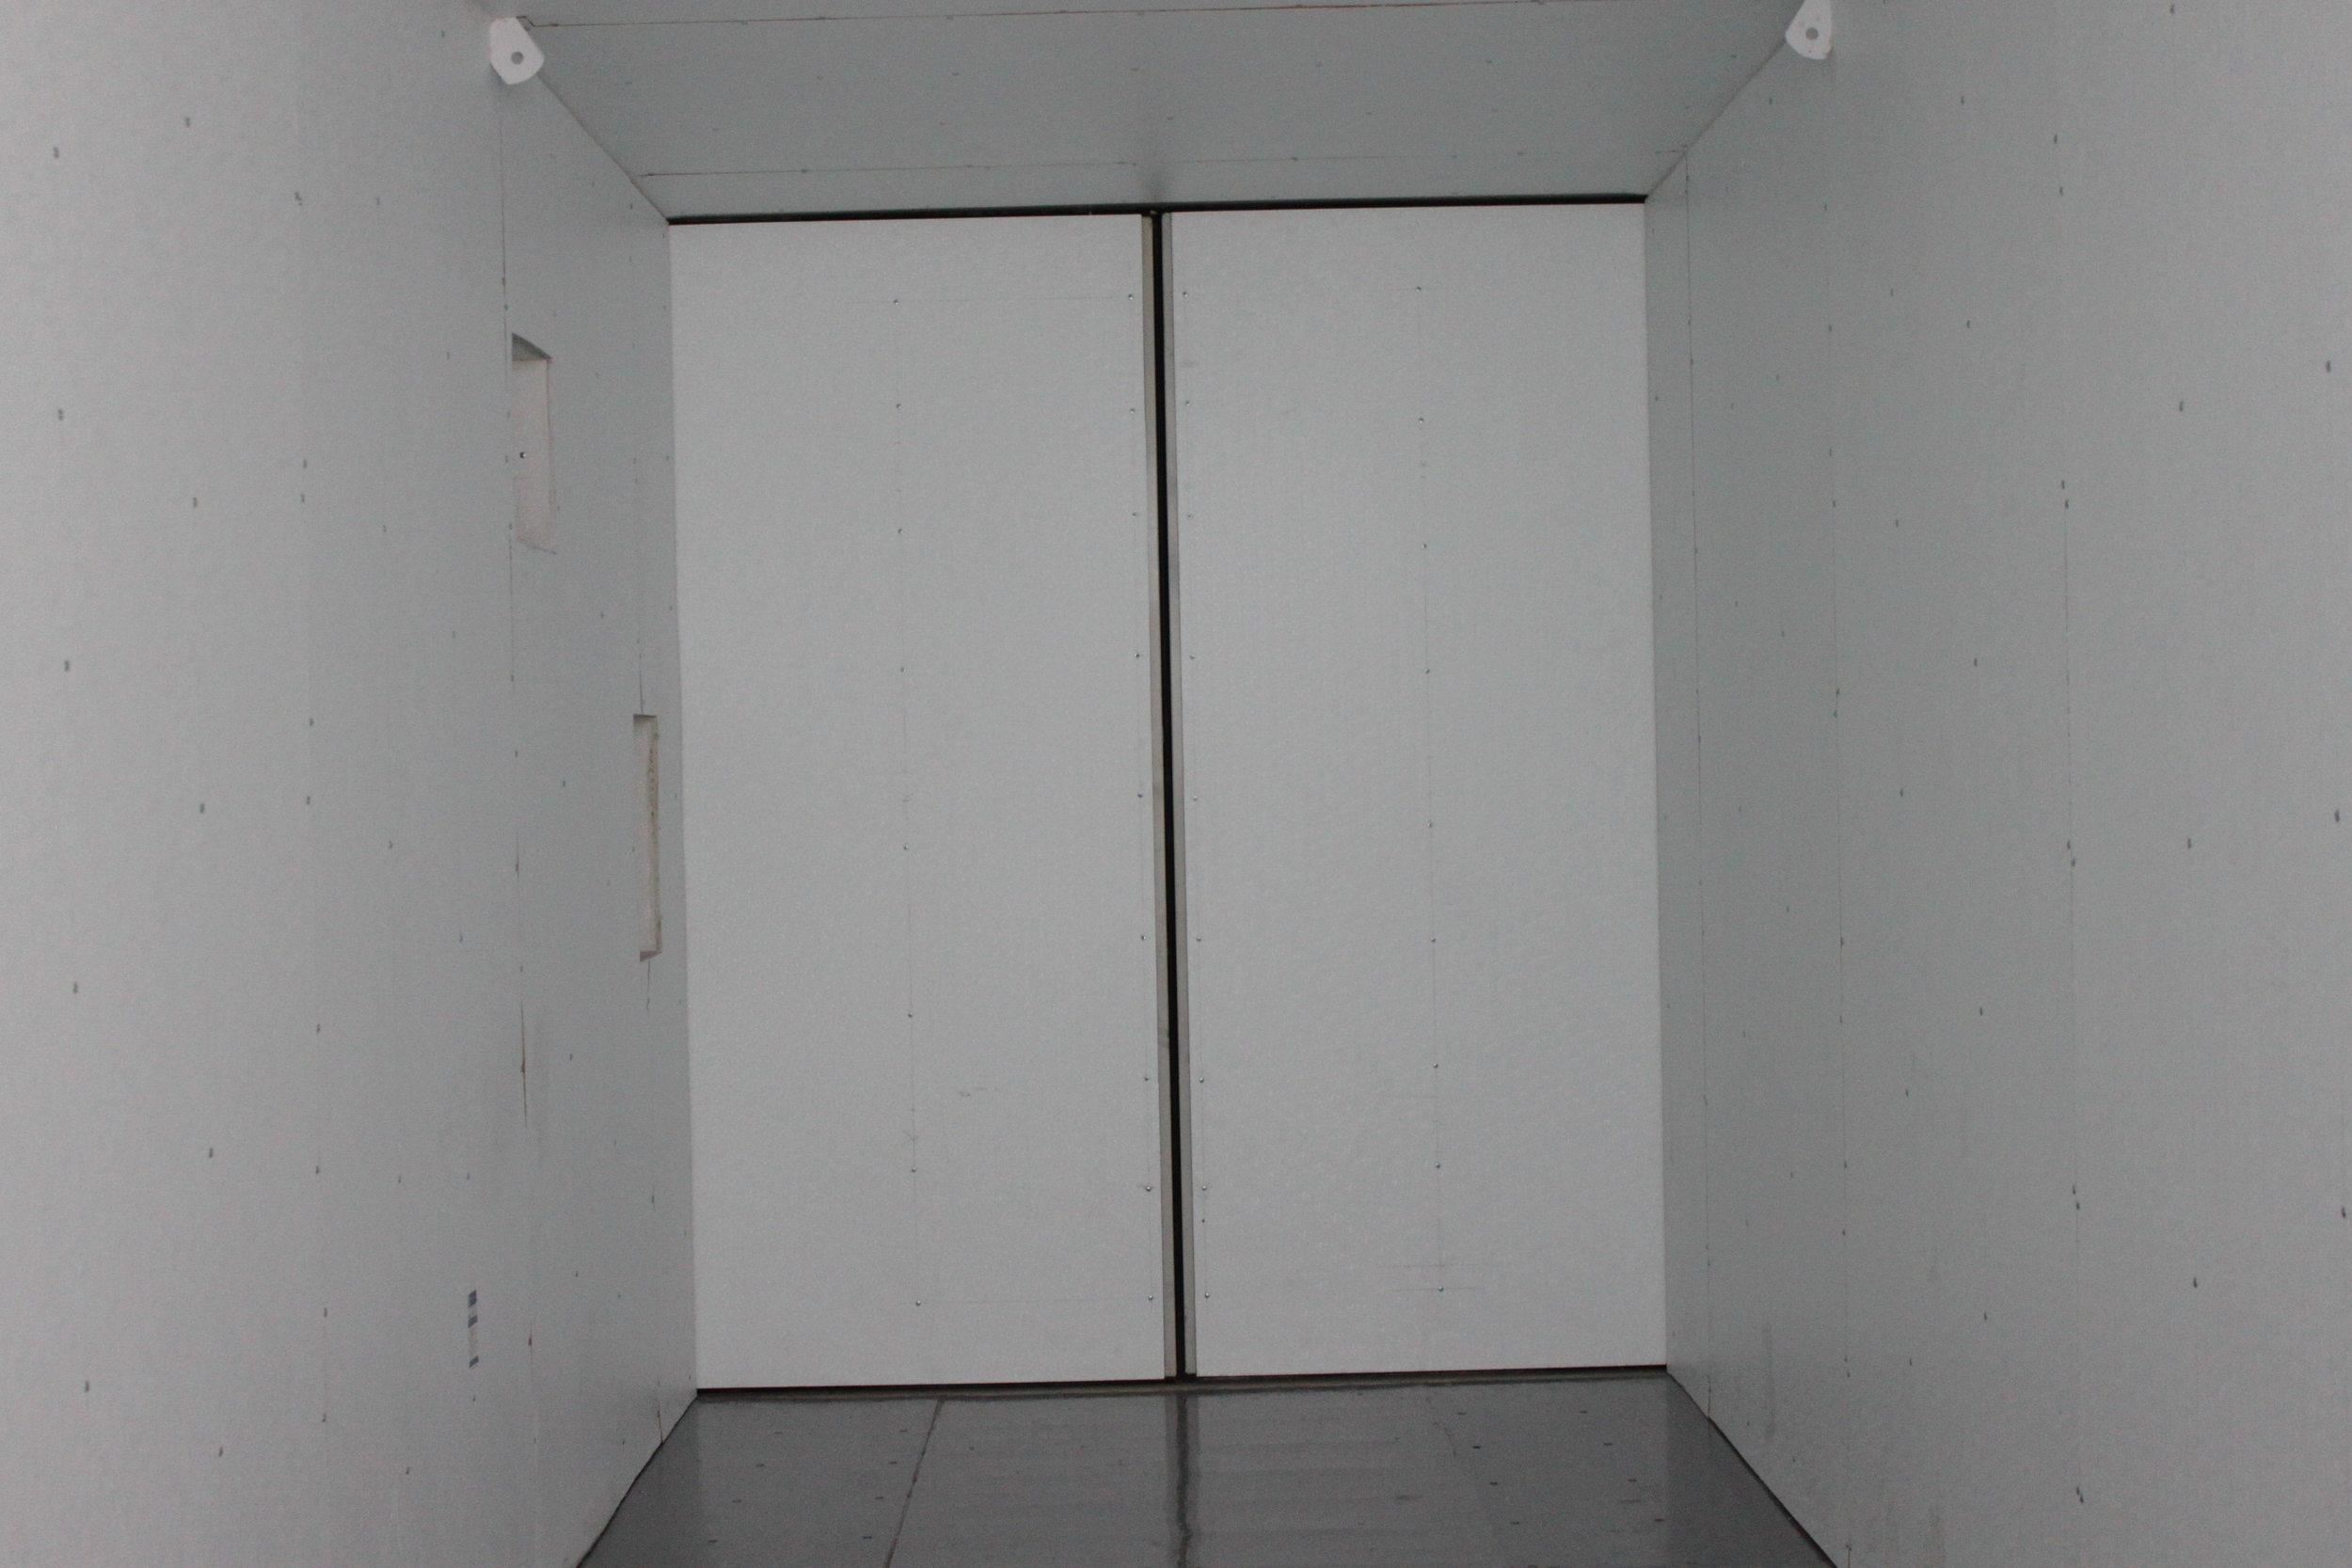 Insualted containers with functioning insulated doors